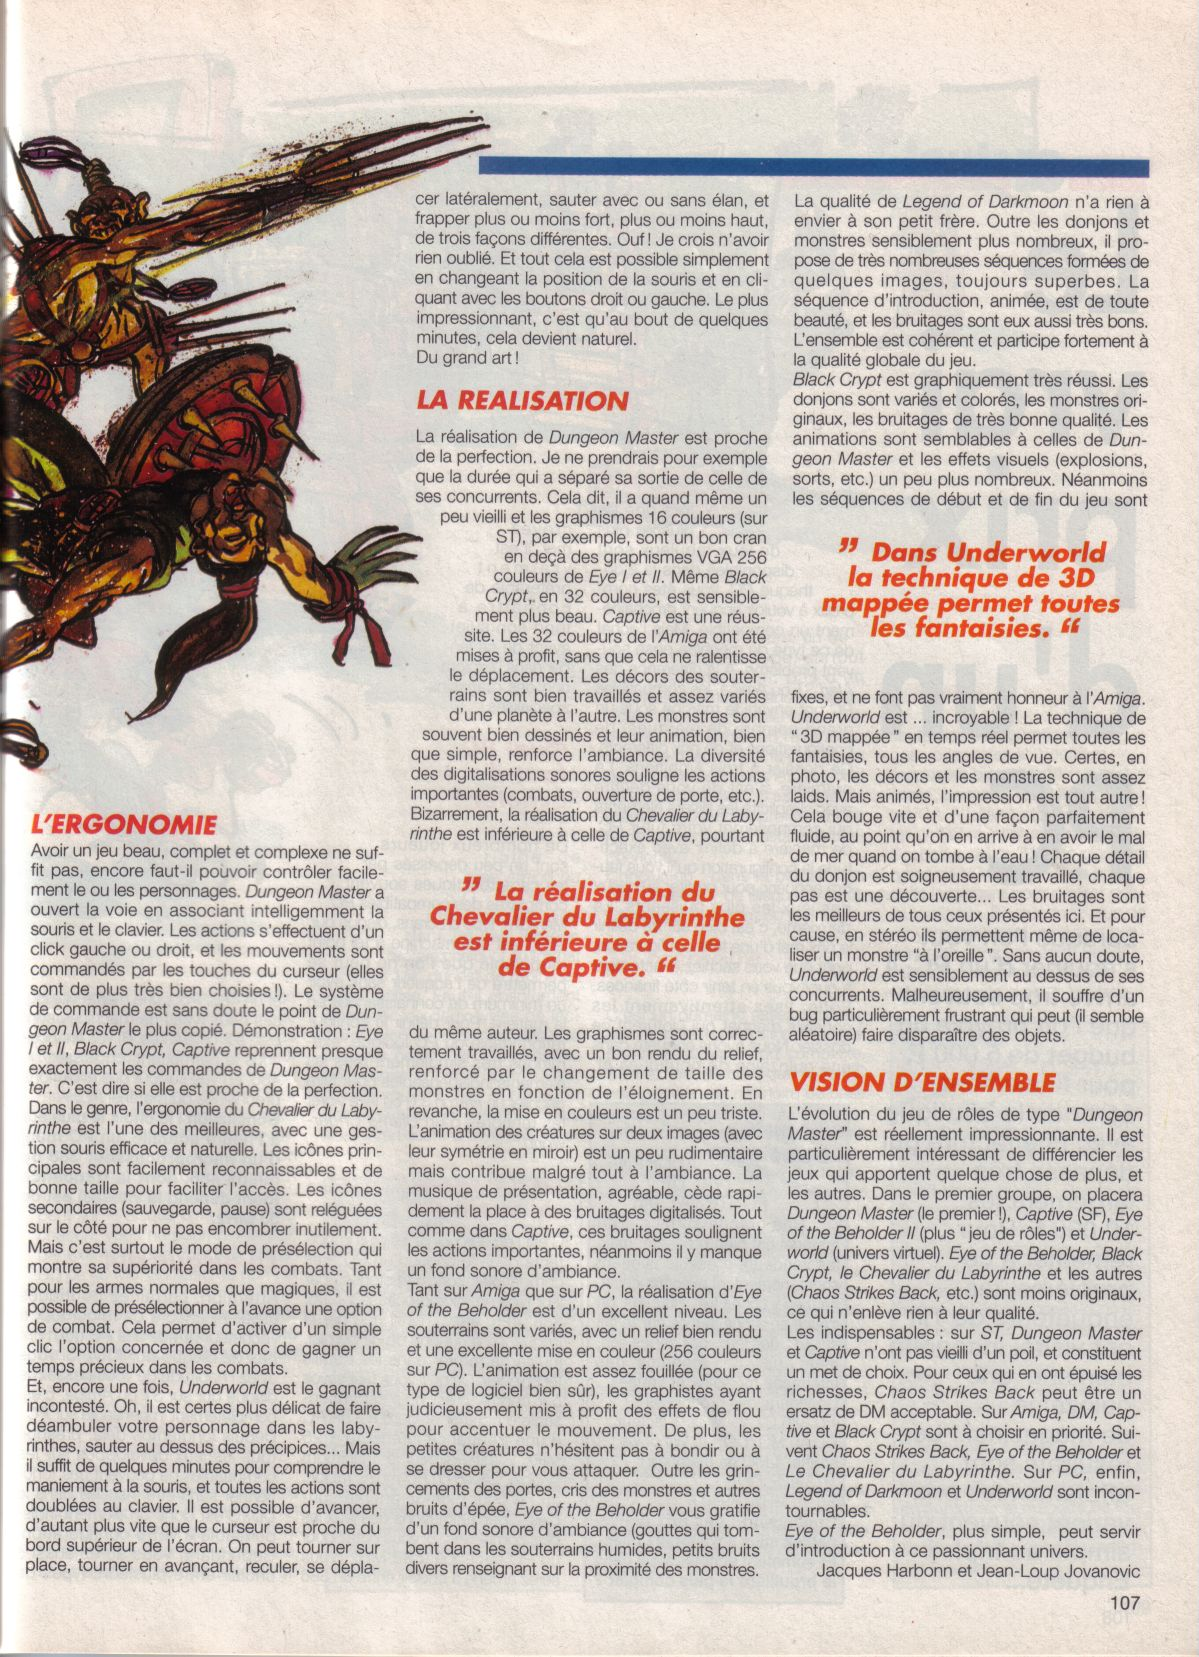 Dungeon Master Article published in French magazine 'Tilt', Issue #105, September 1992, Page 107